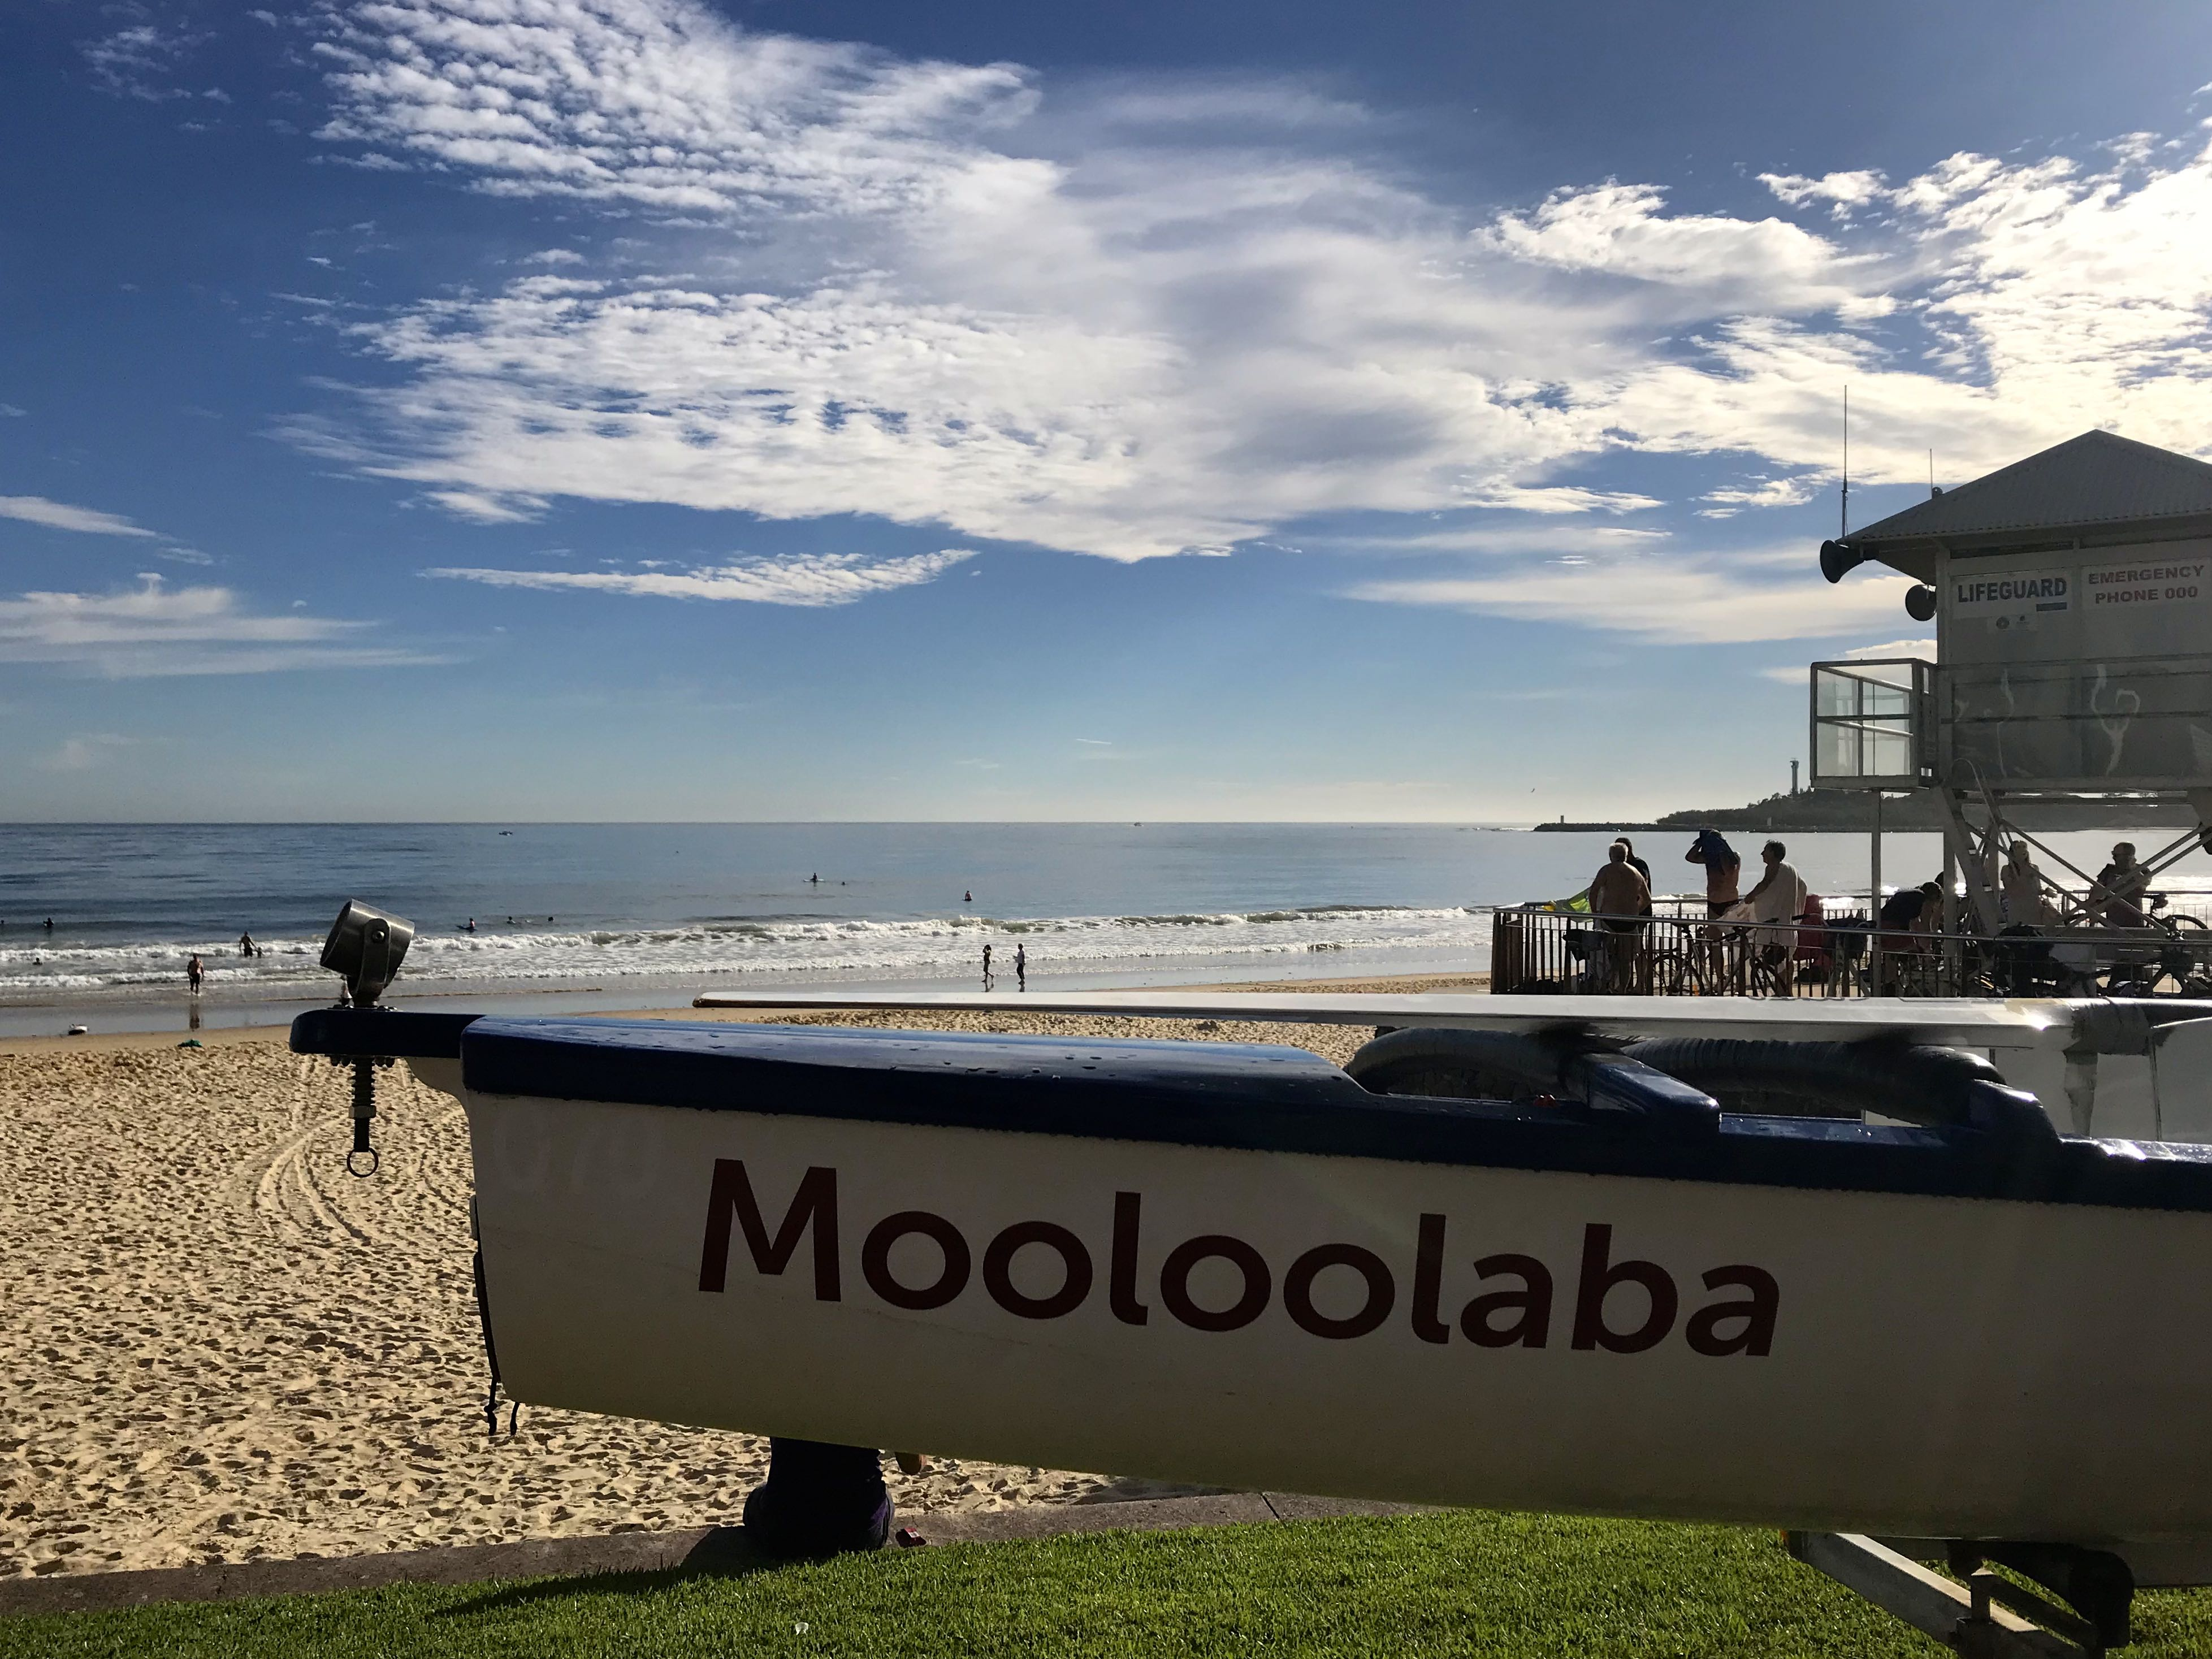 Mooloolaba – My Top Ten